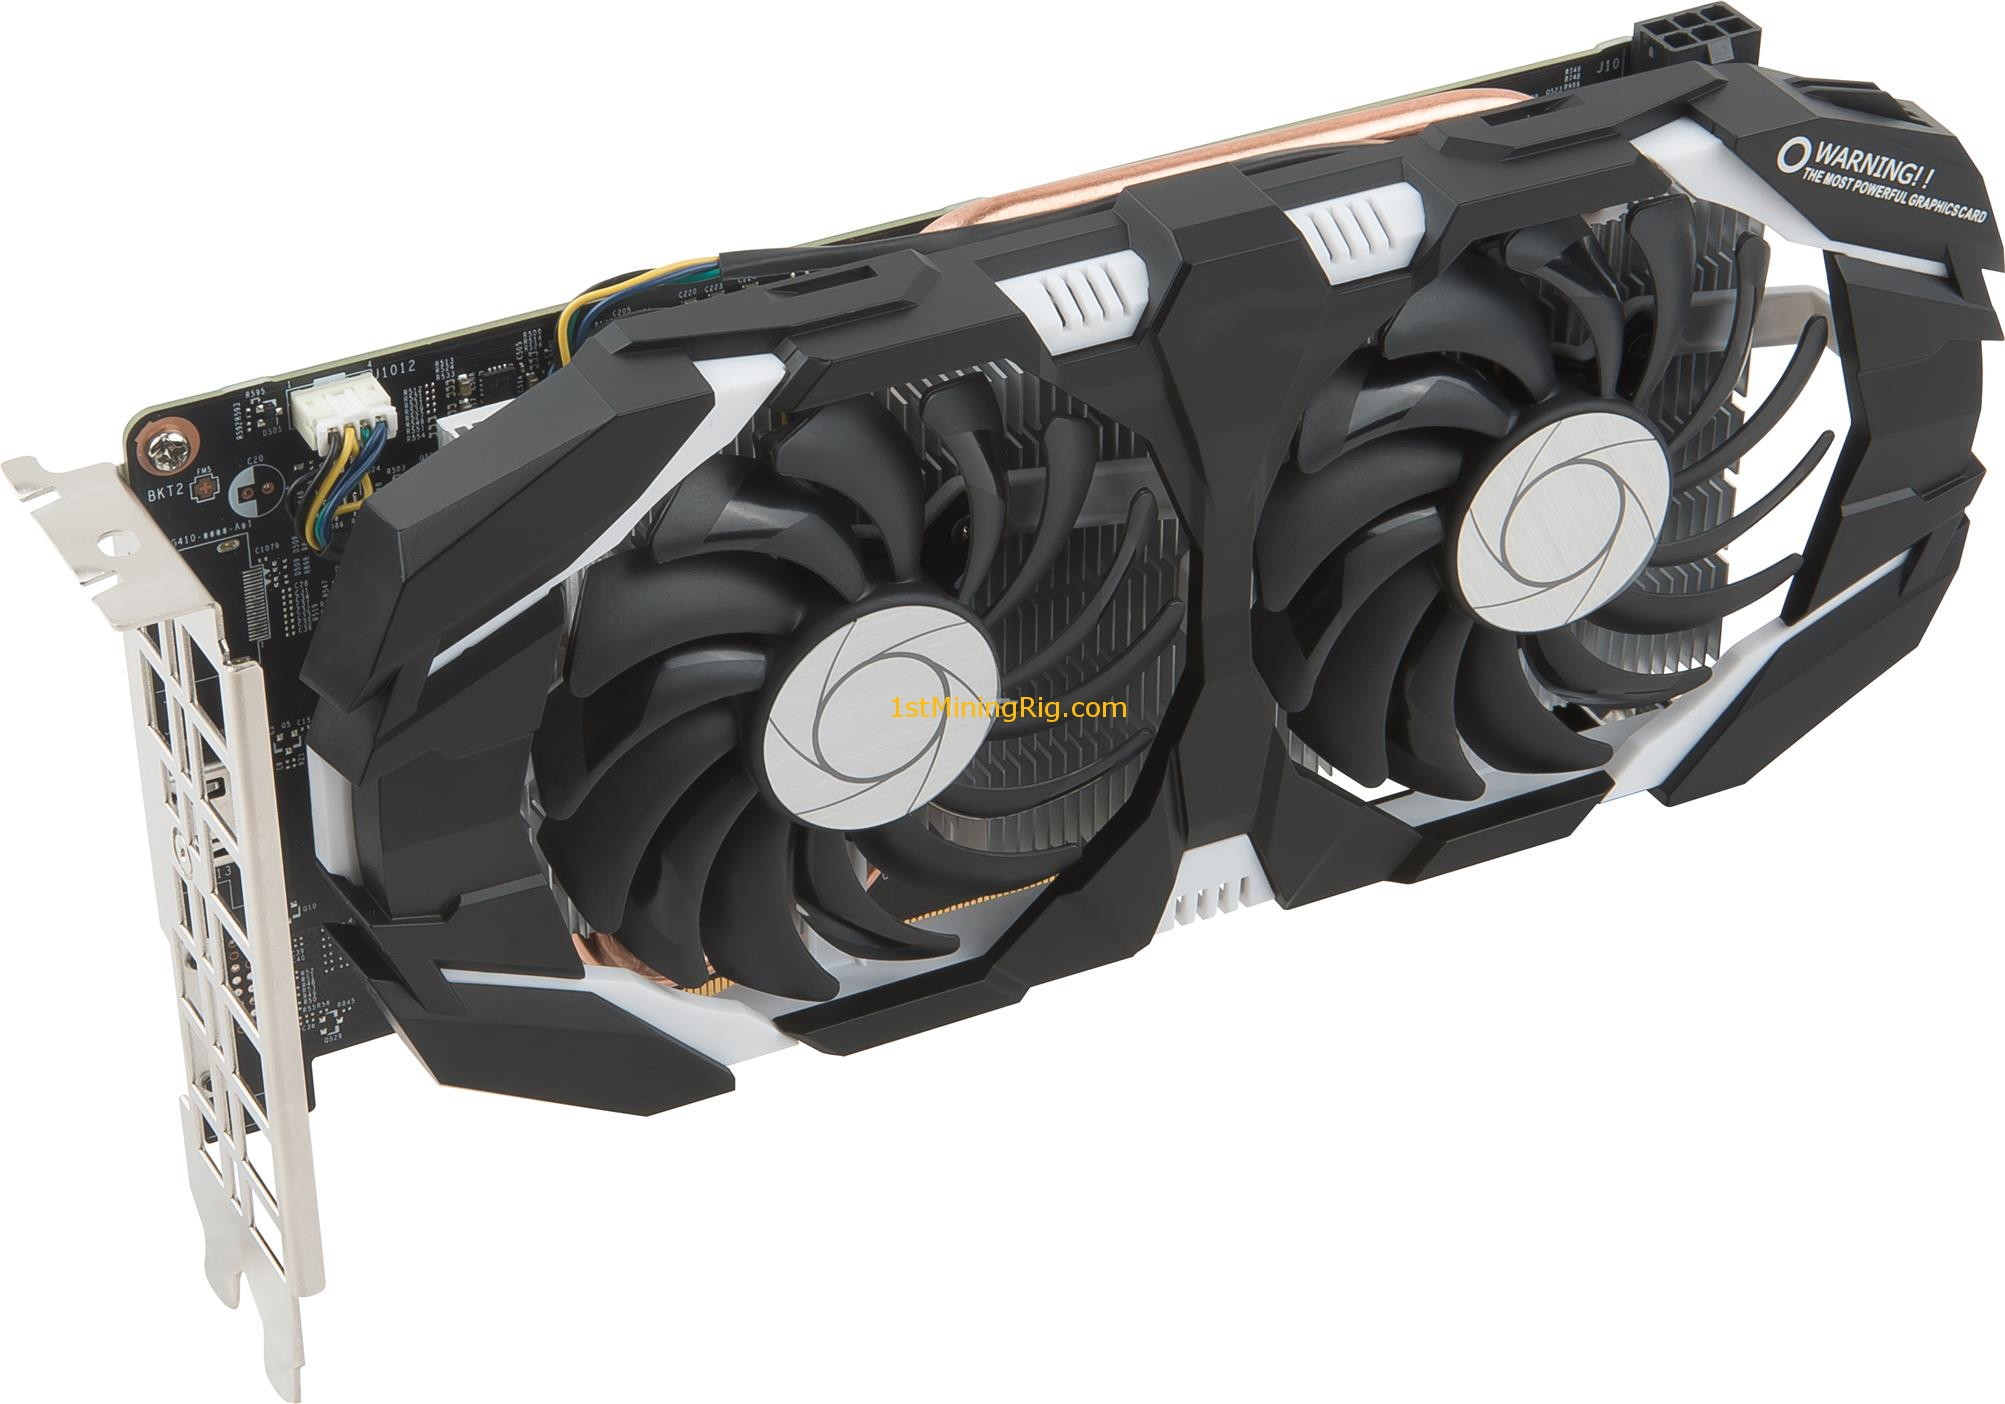 ASUS P104-100 Mining GPU Review - Mining on Steroids 40+ Mh/s - 1st